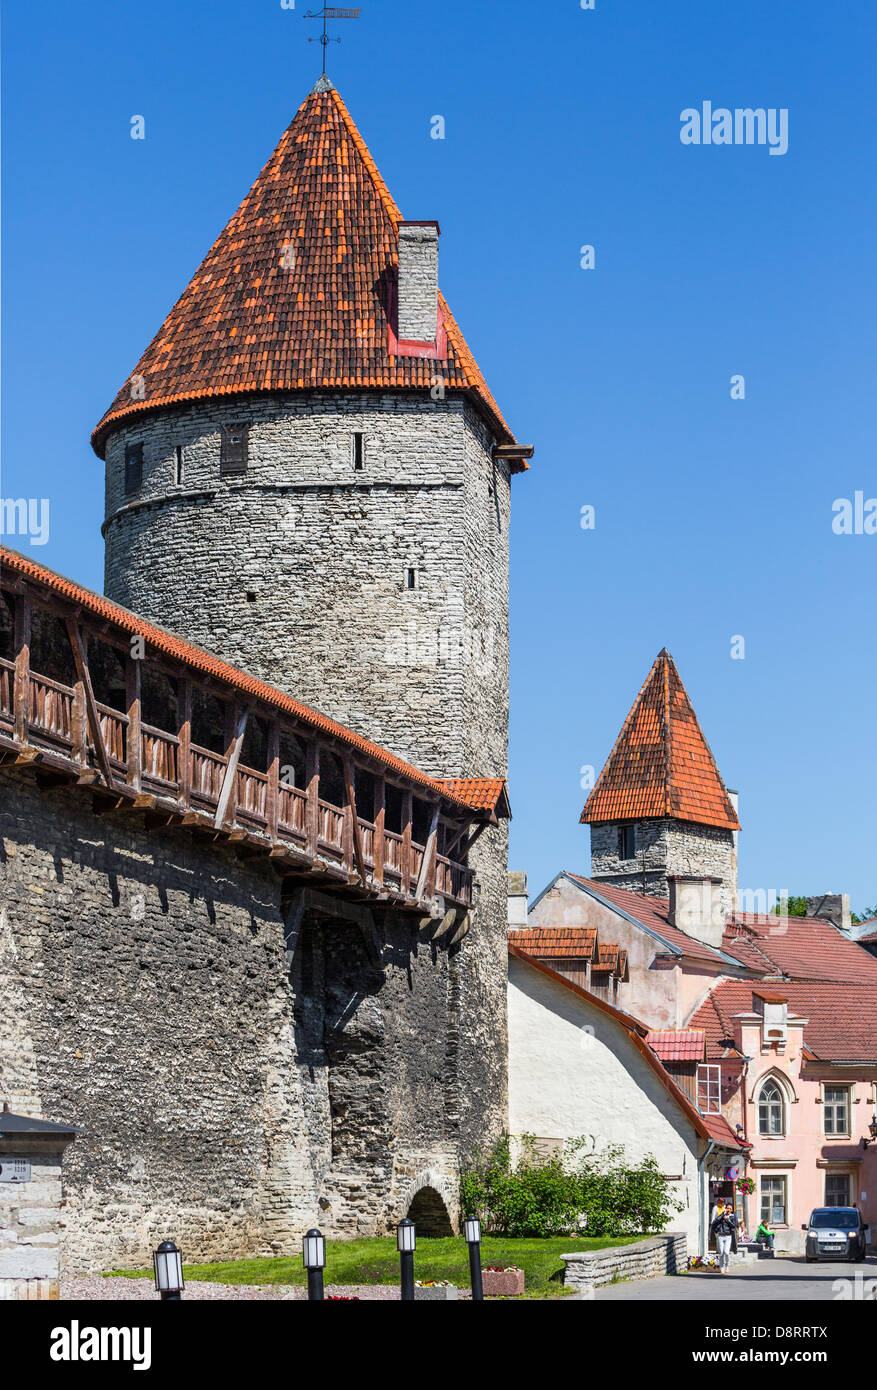 Tallinn medieval town city wall, watch tower towers - Stock Image